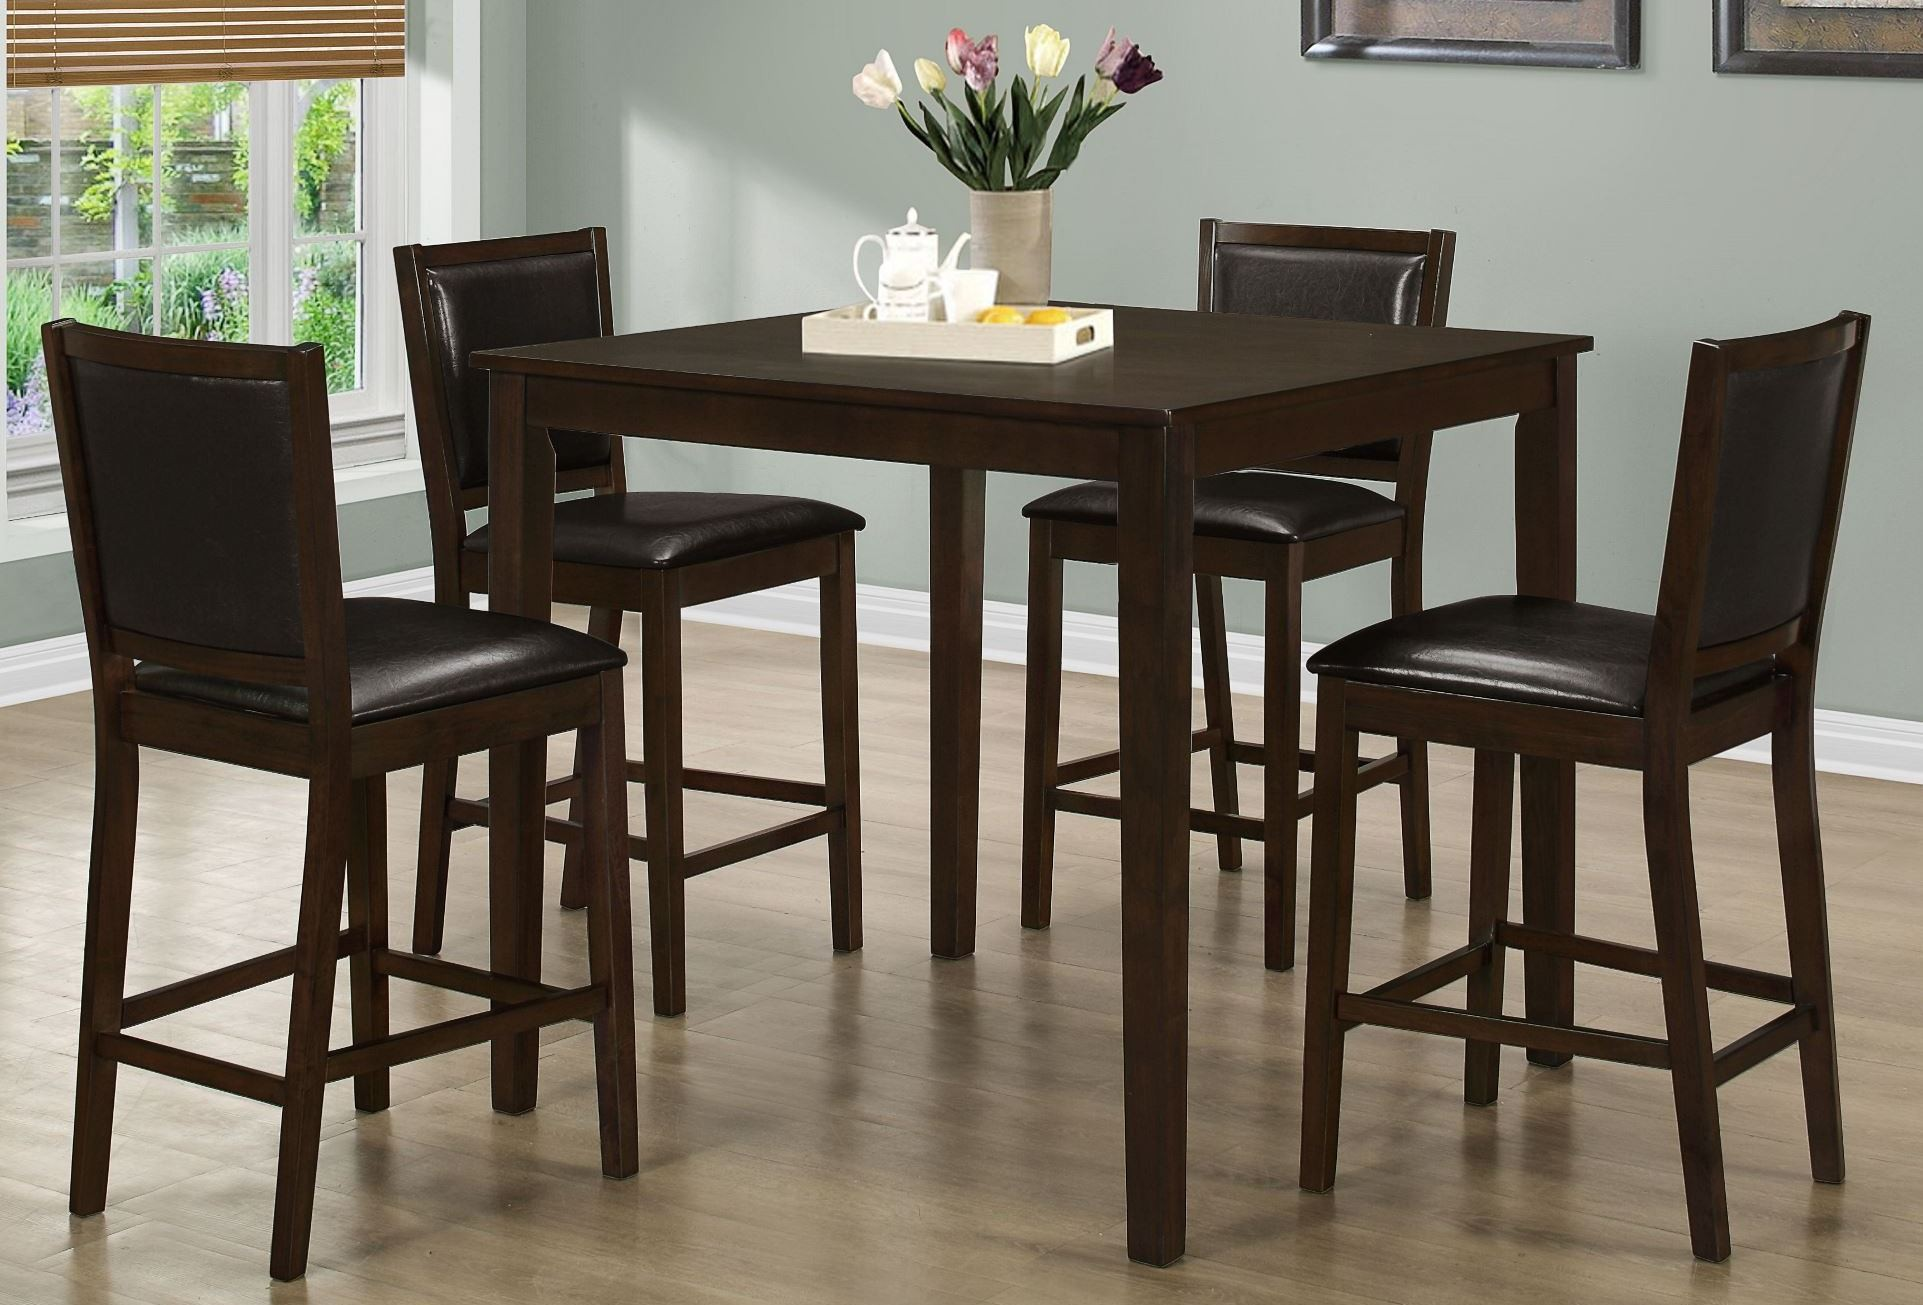 Walnut 5 piece counter height dining room set 1549 monarch for Dining room sets